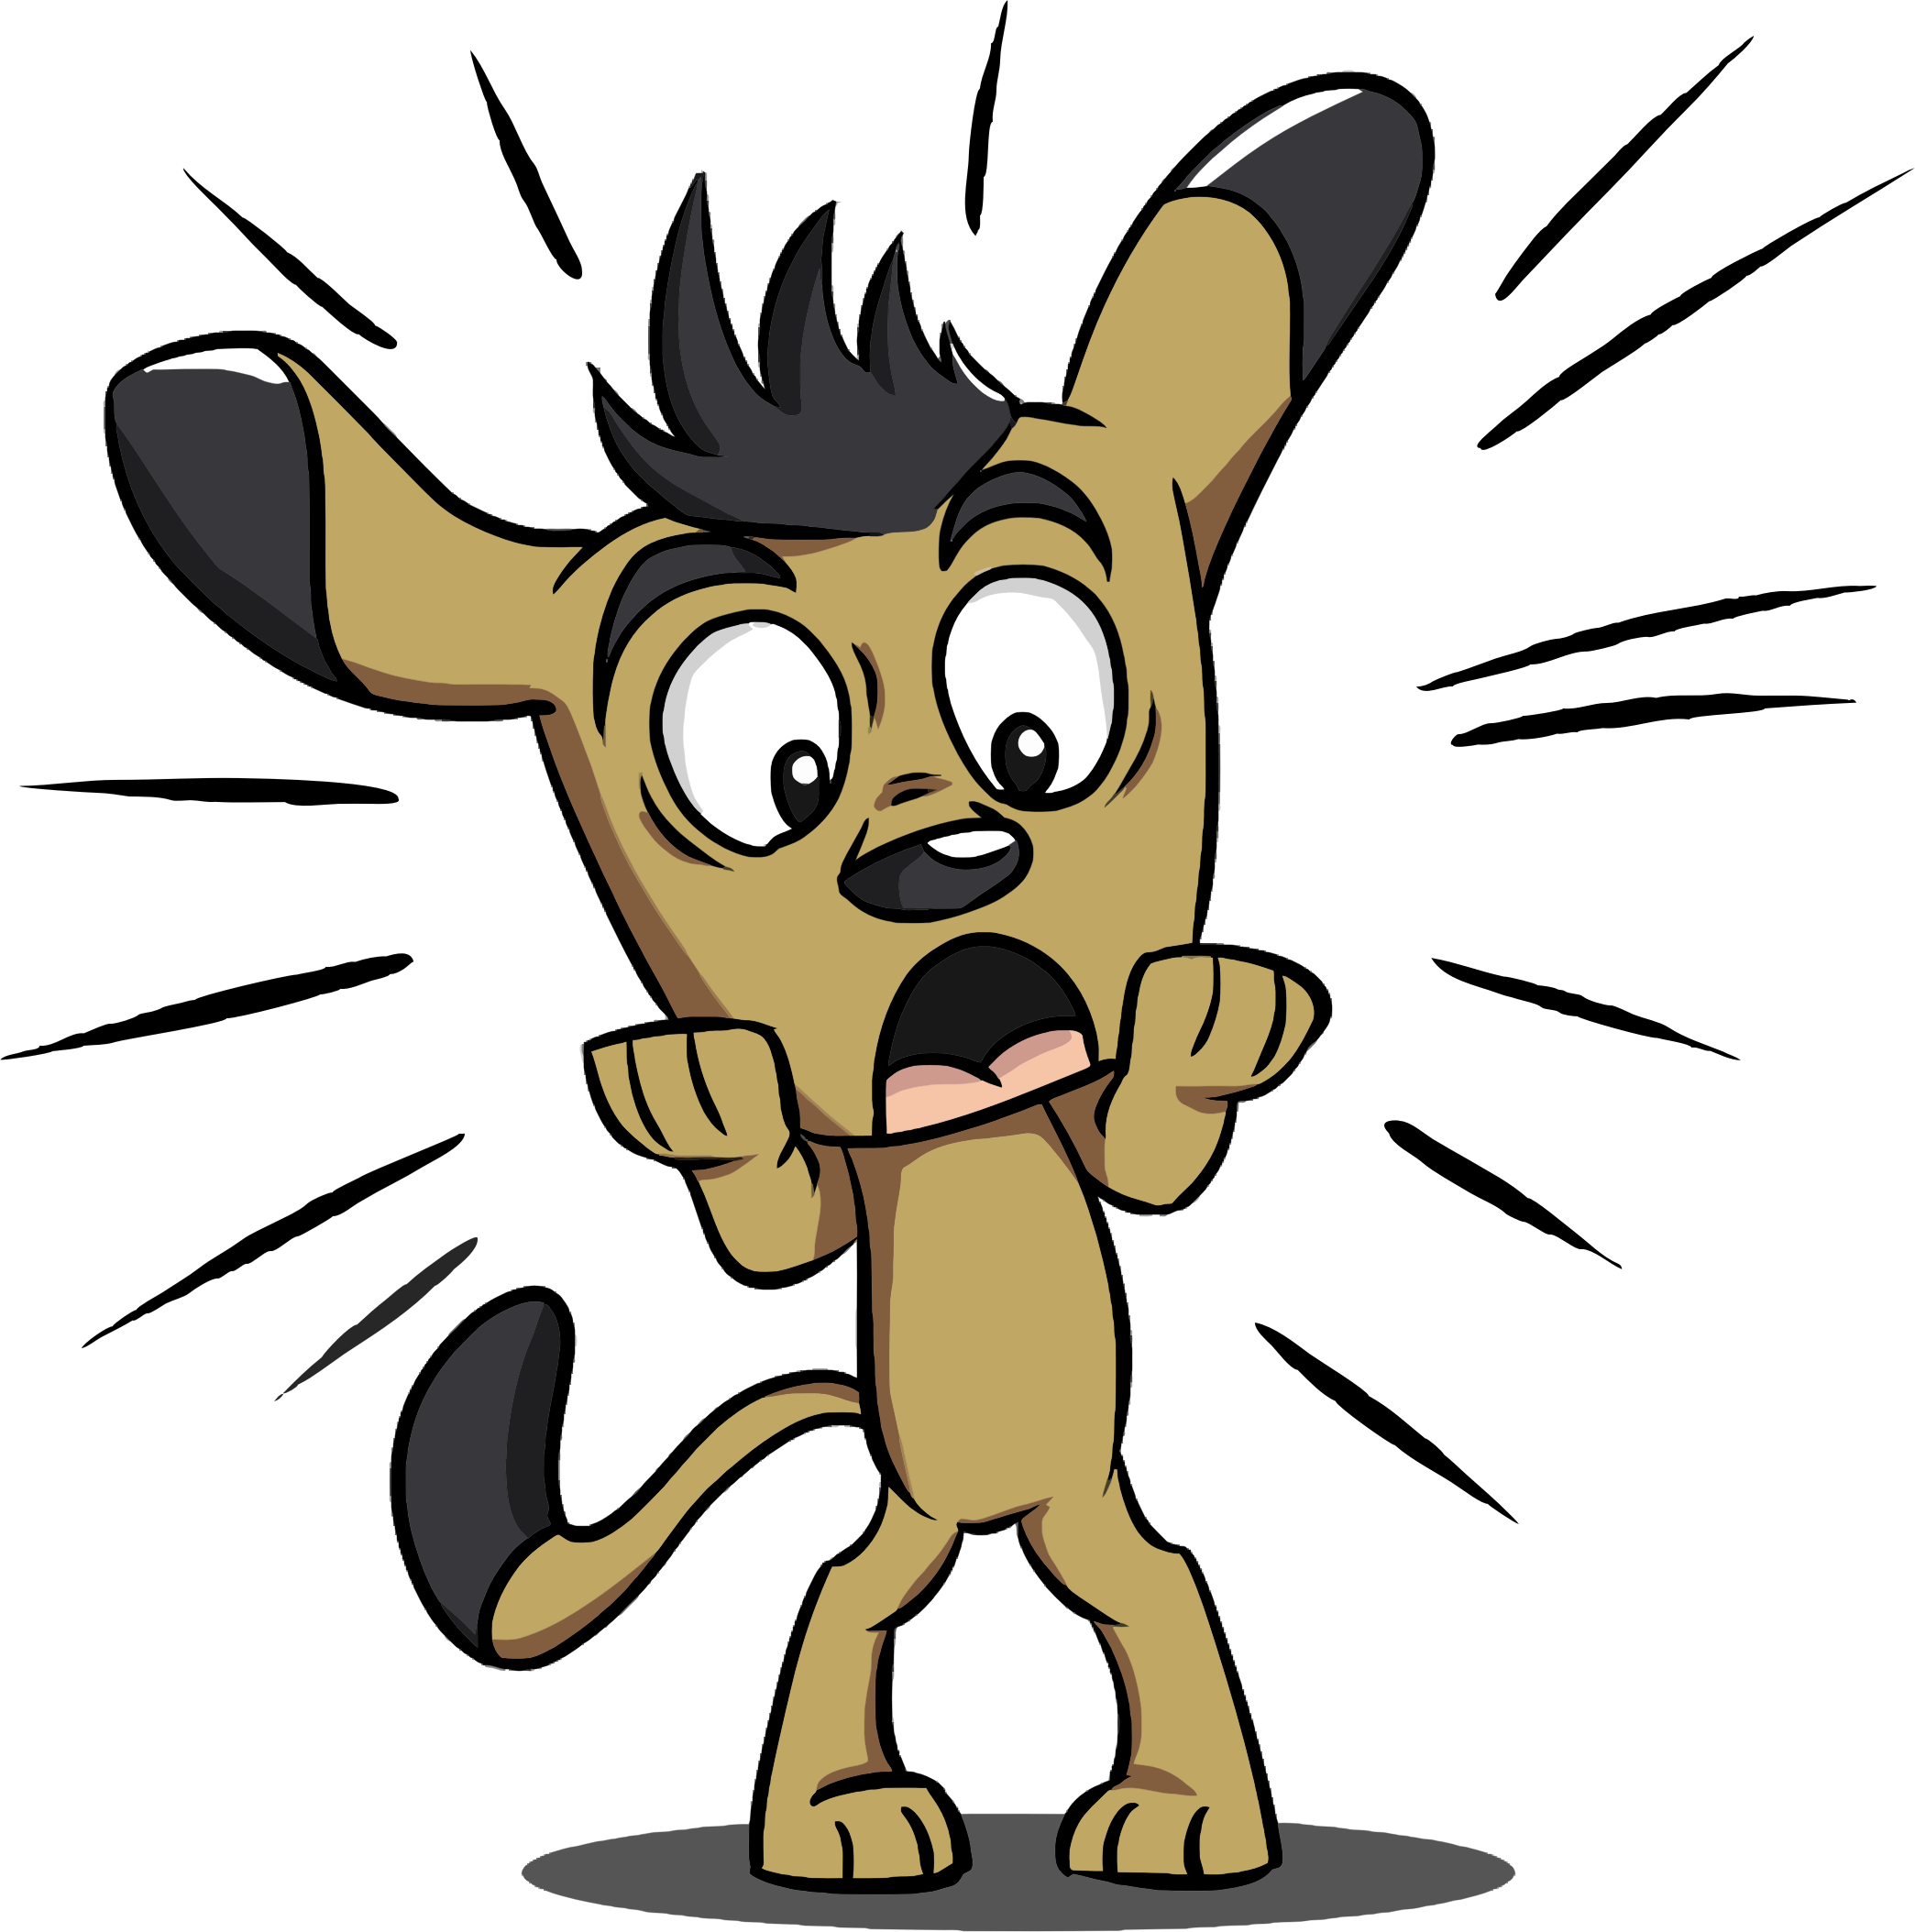 Puppy big image png. Emotions clipart surprised